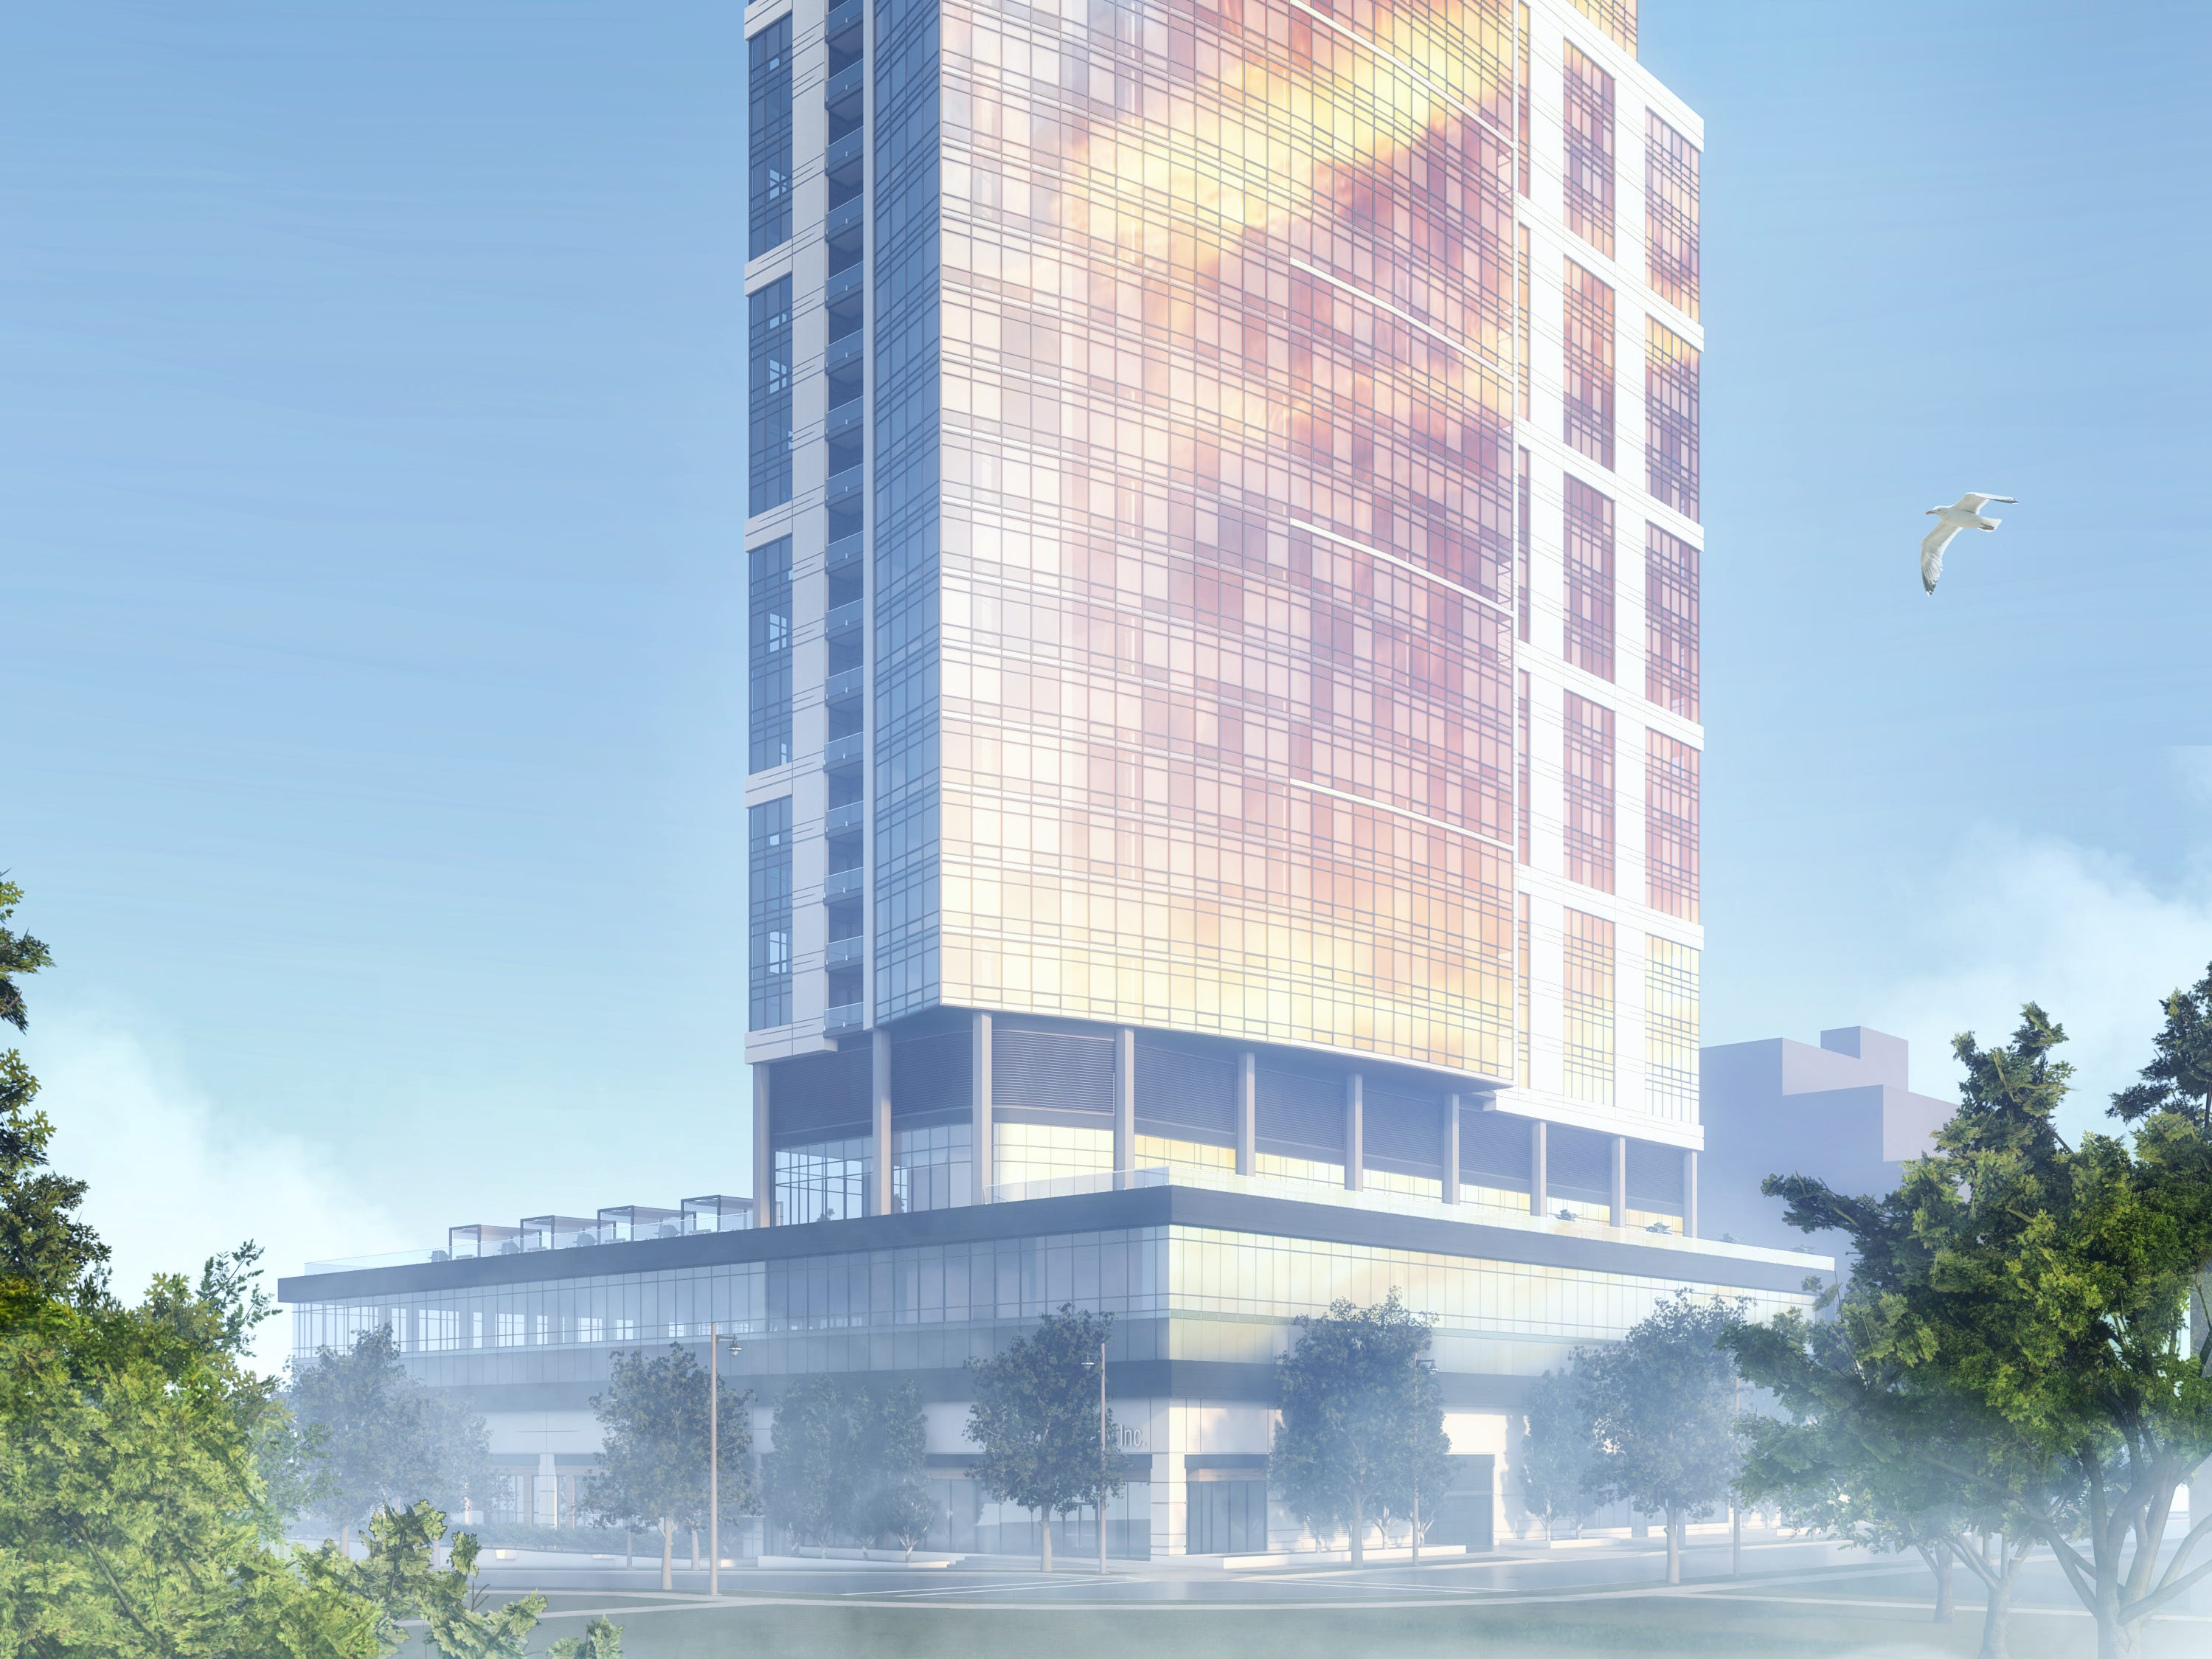 Convent Hill South, a 32-story apartment high-rise proposed for Milwaukee's downtown area, would include an unusual mix of market-rate and affordable apartments.